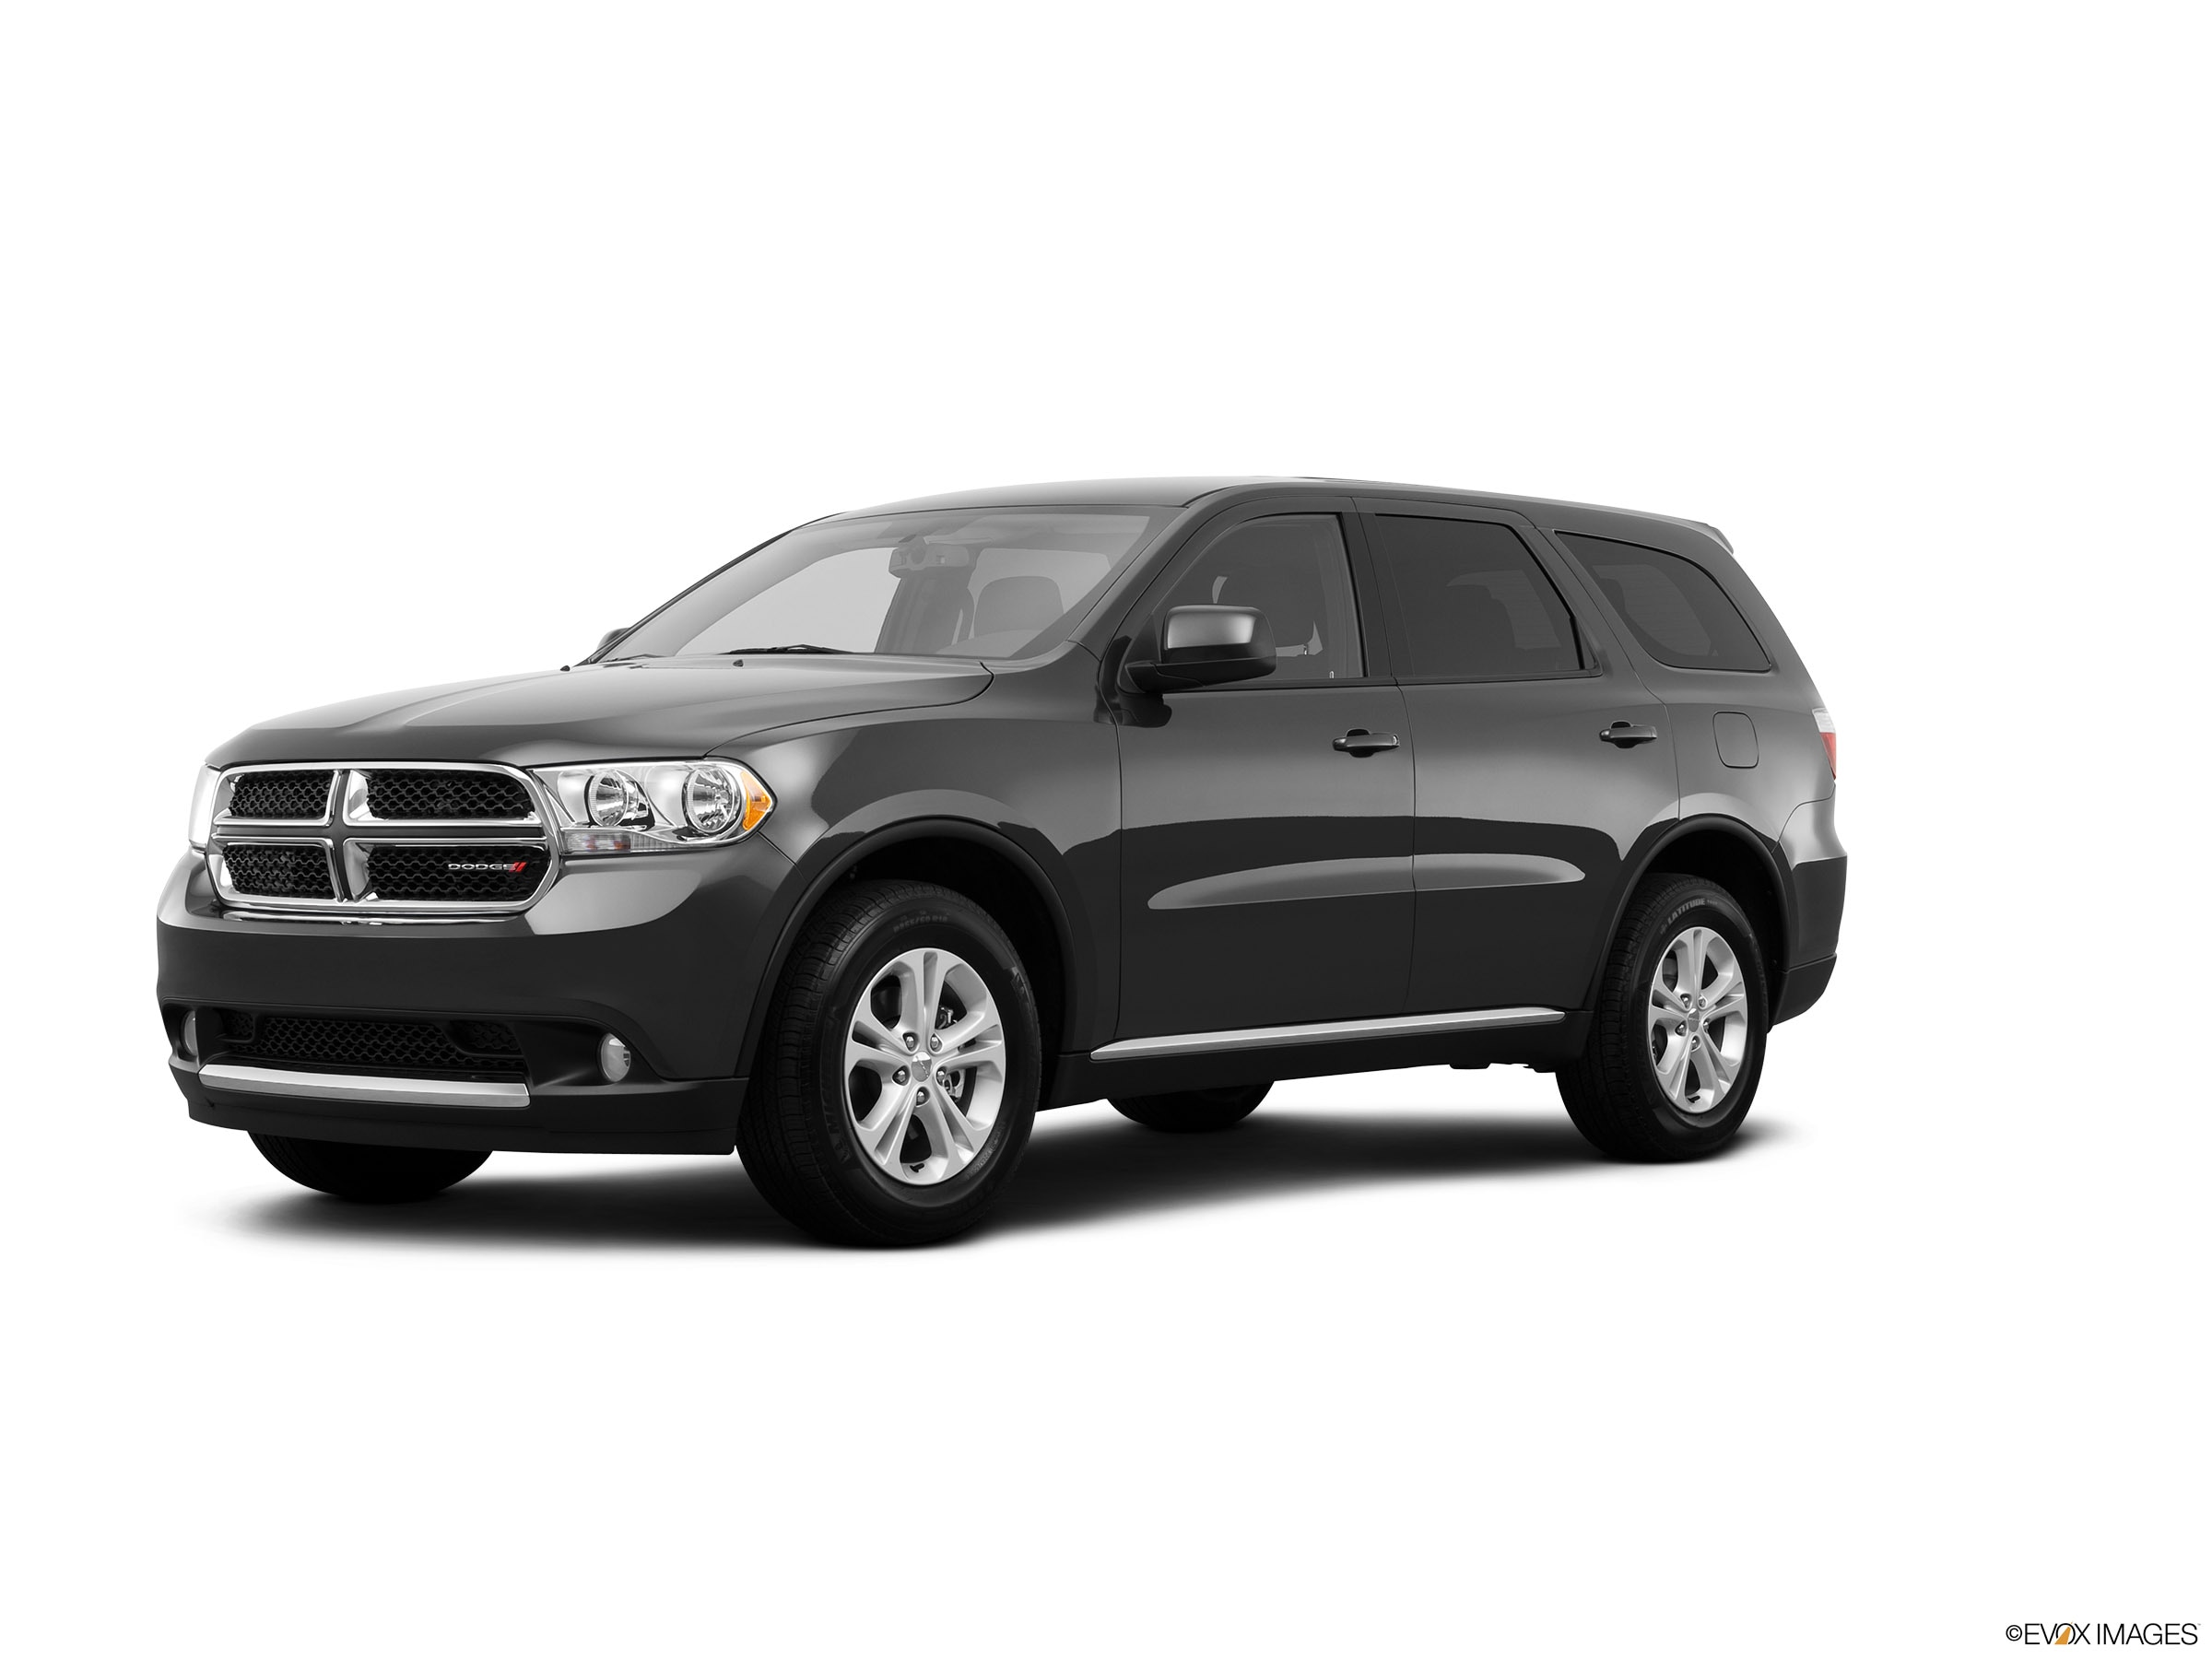 used 2013 Dodge Durango car